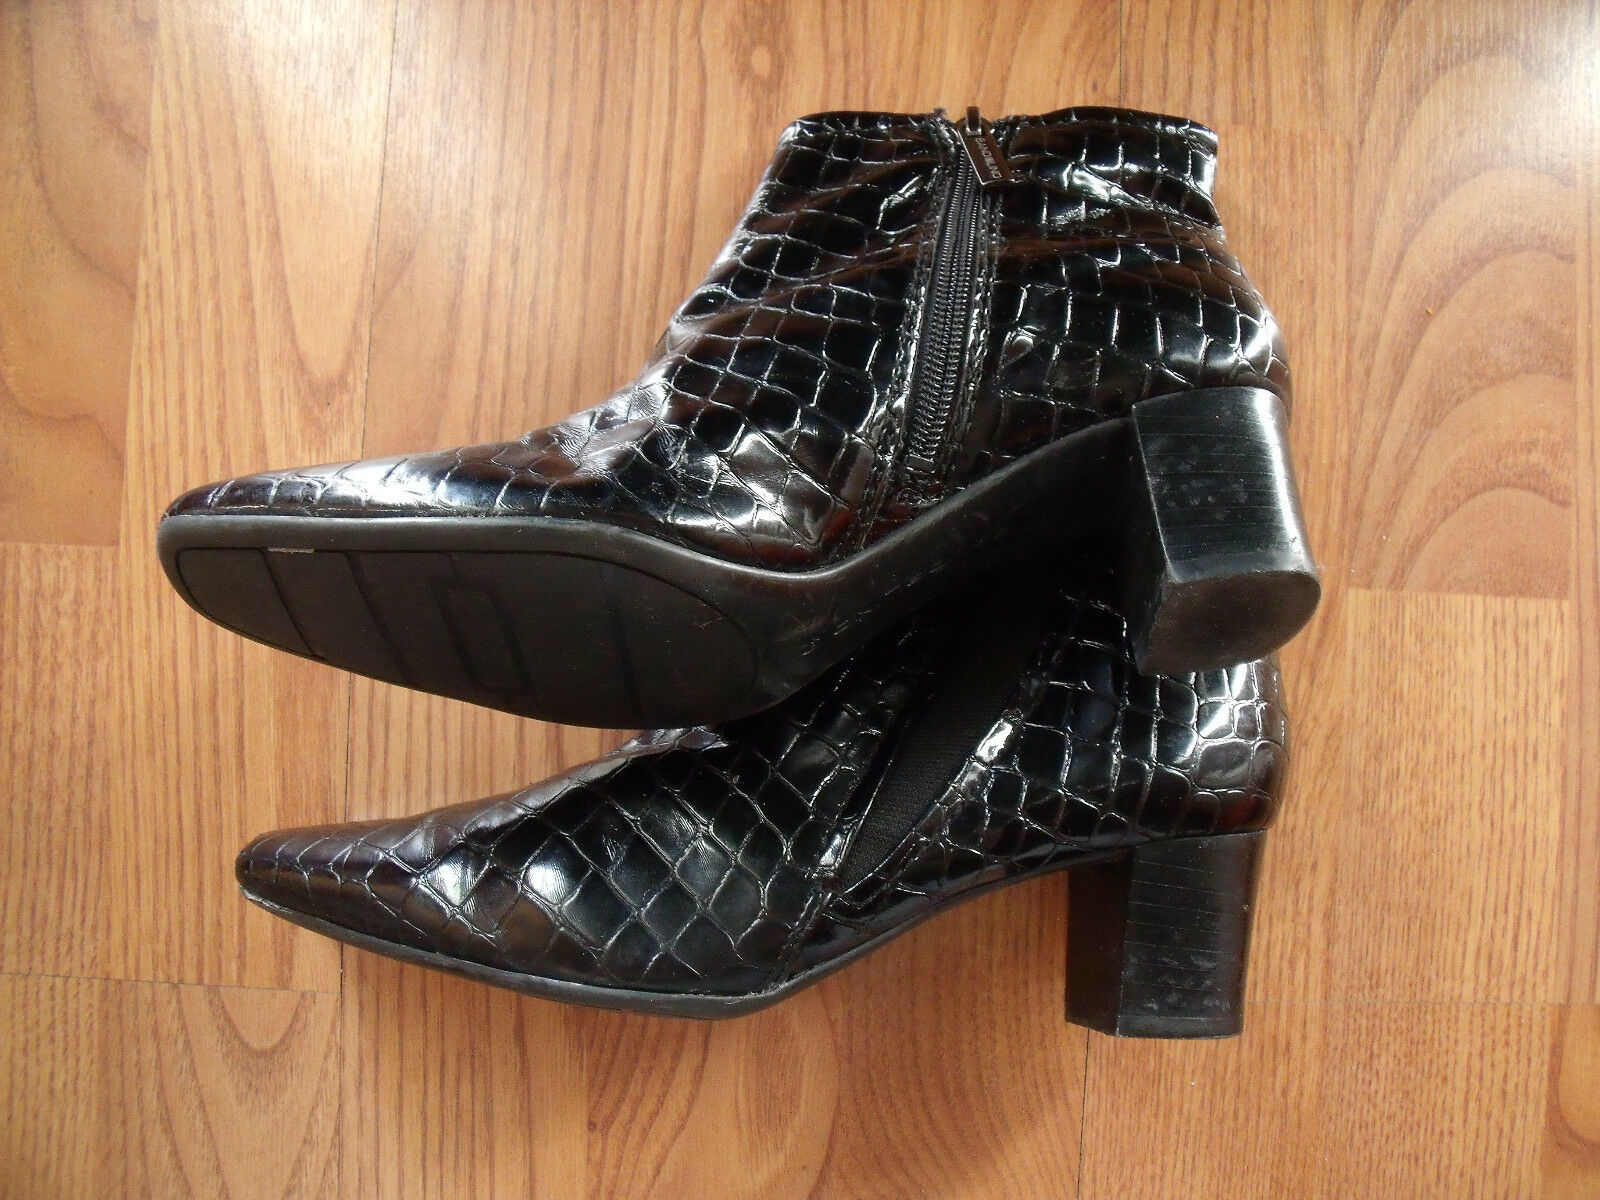 Ankle Boots Bandolino Black Alligator side Zip/Stretch womens size US 6.5